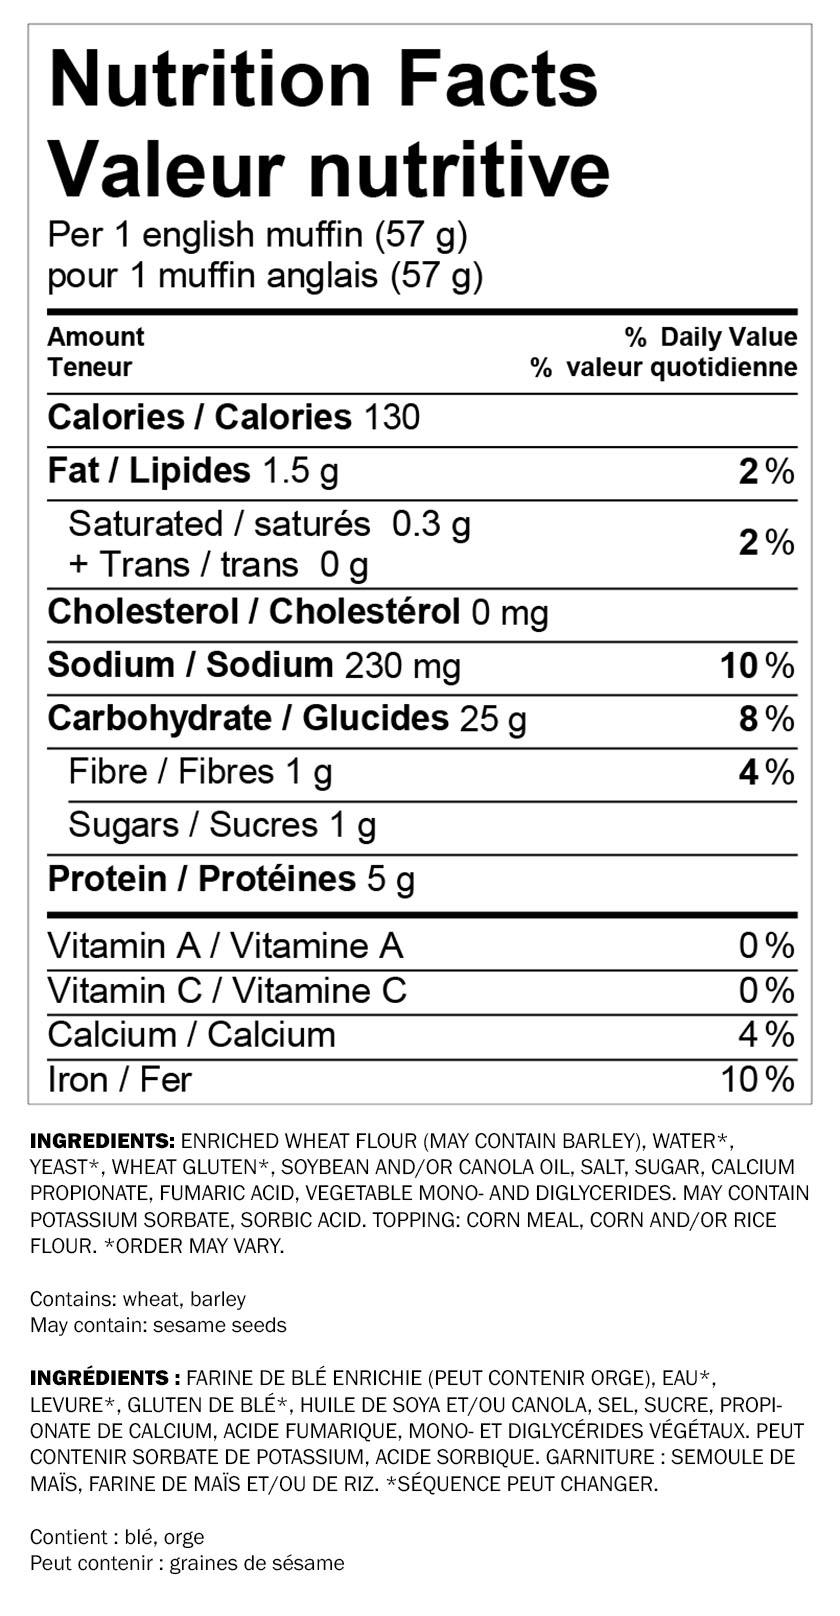 Nutritional information for Wonder® White English Muffin 6pk